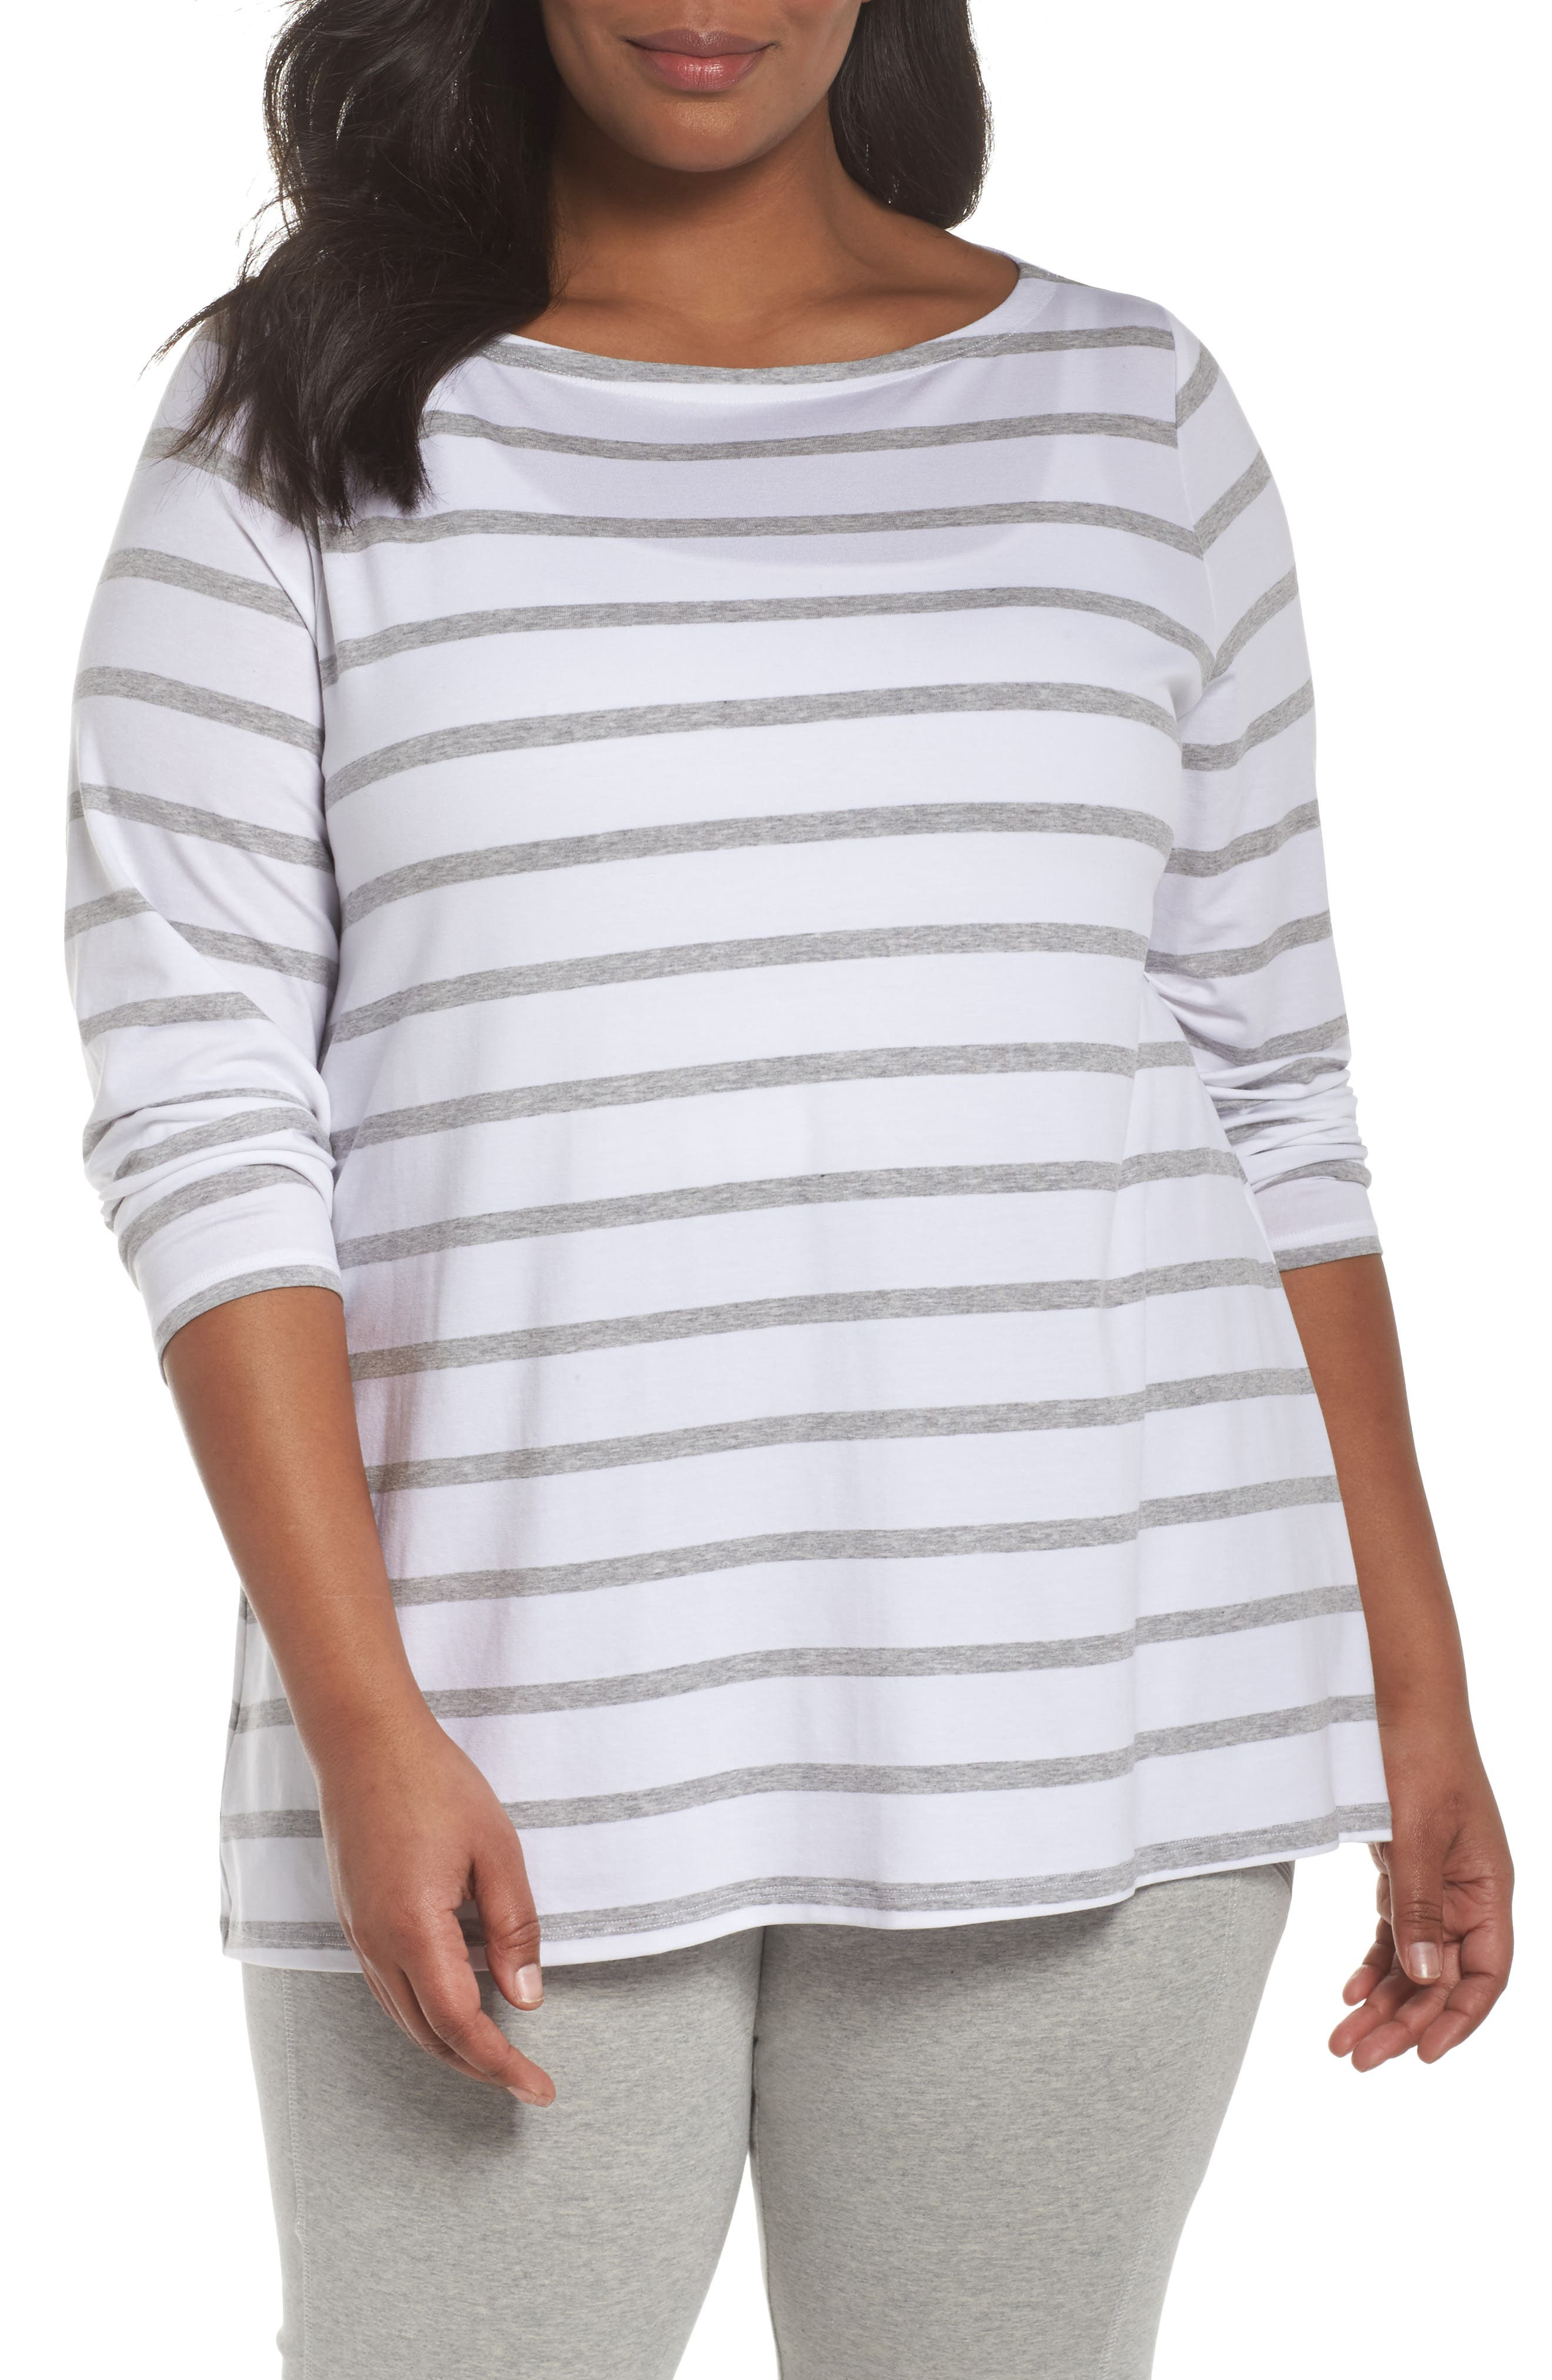 Stripe Stretch Tencel<sup>®</sup> Lyocell Top,                             Main thumbnail 1, color,                             131